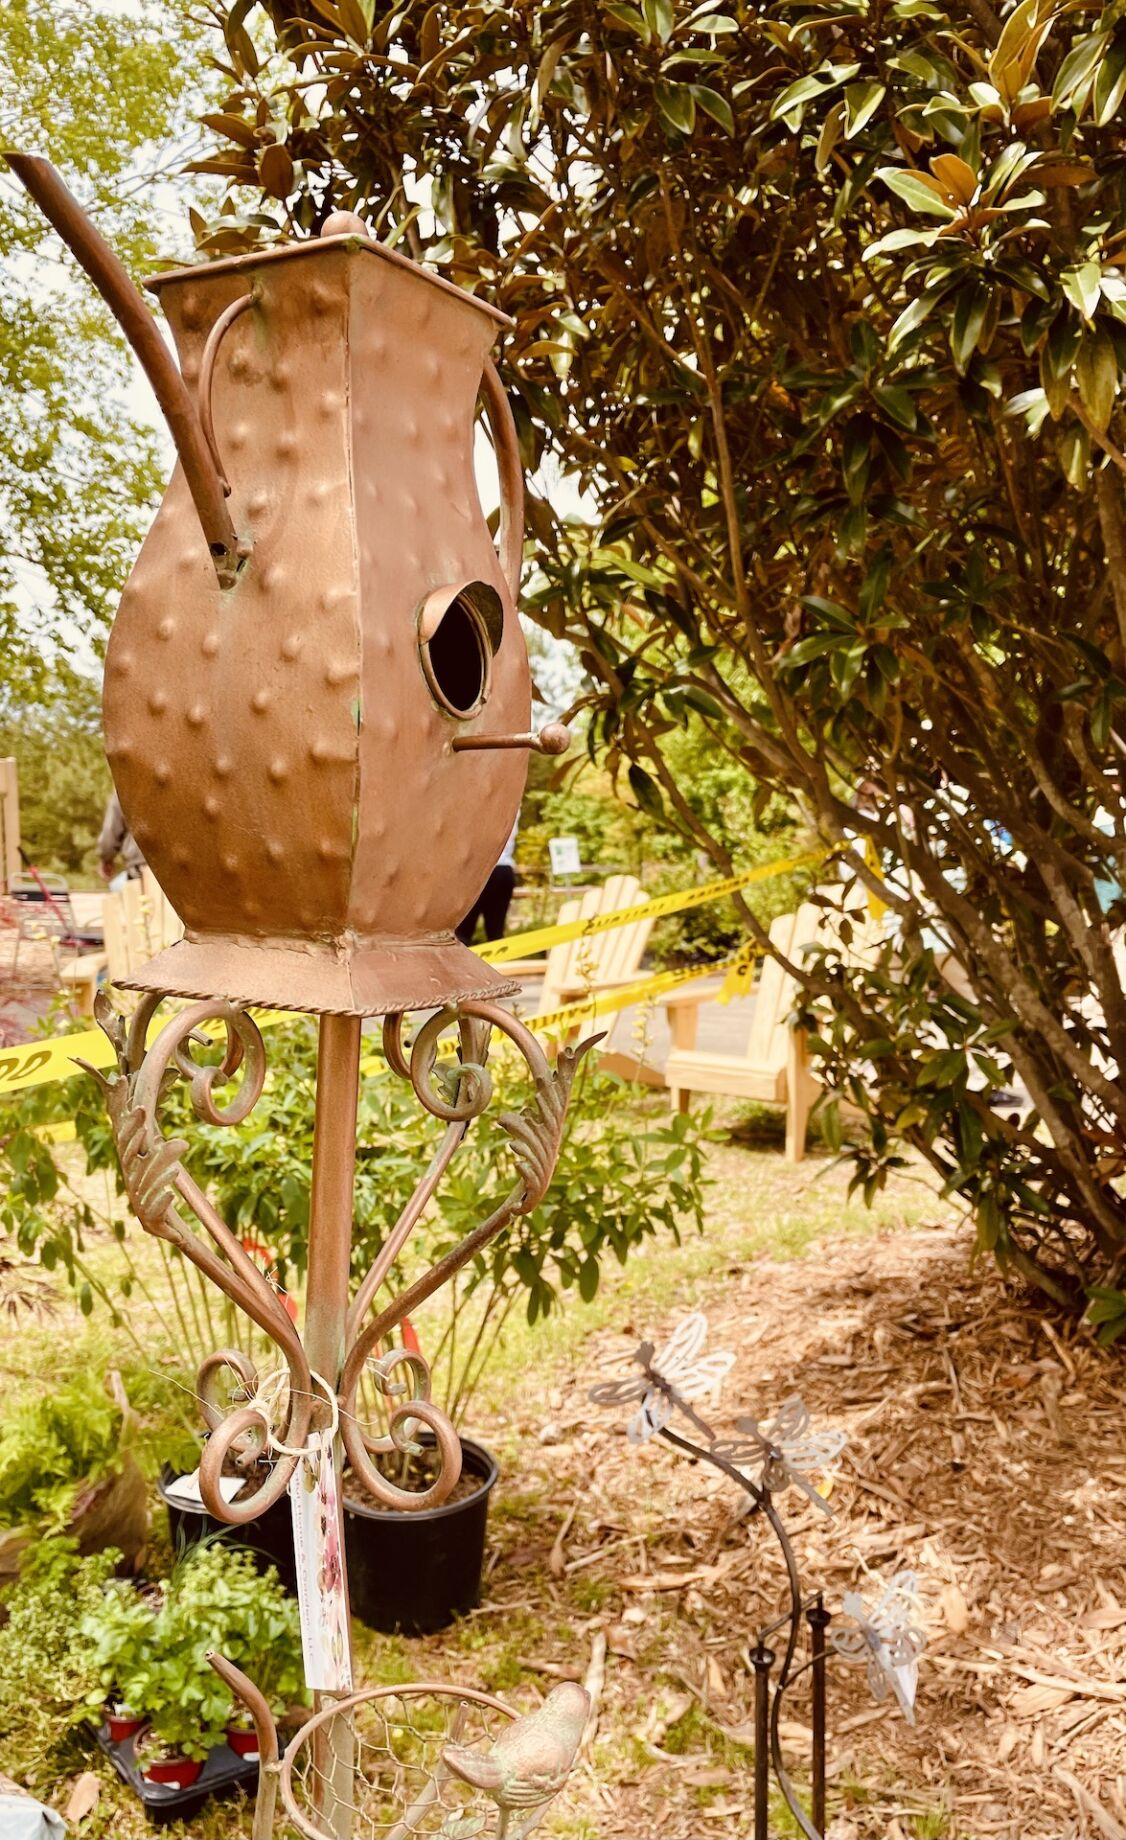 Artistic birdhouses were available at the April WFB Plant Sale.